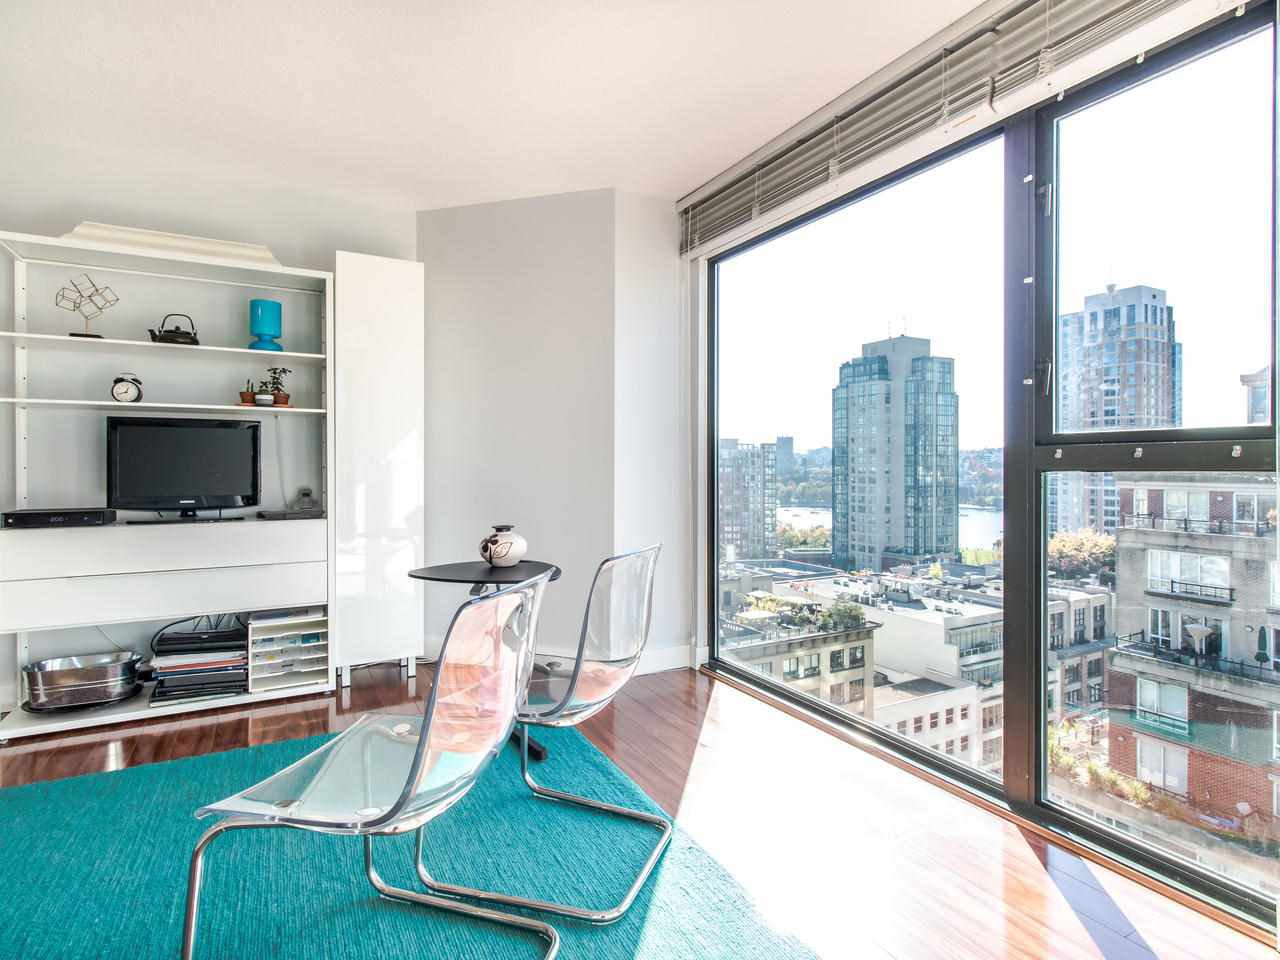 """Main Photo: 1303 1155 HOMER Street in Vancouver: Yaletown Condo for sale in """"City Crest"""" (Vancouver West)  : MLS®# R2412766"""